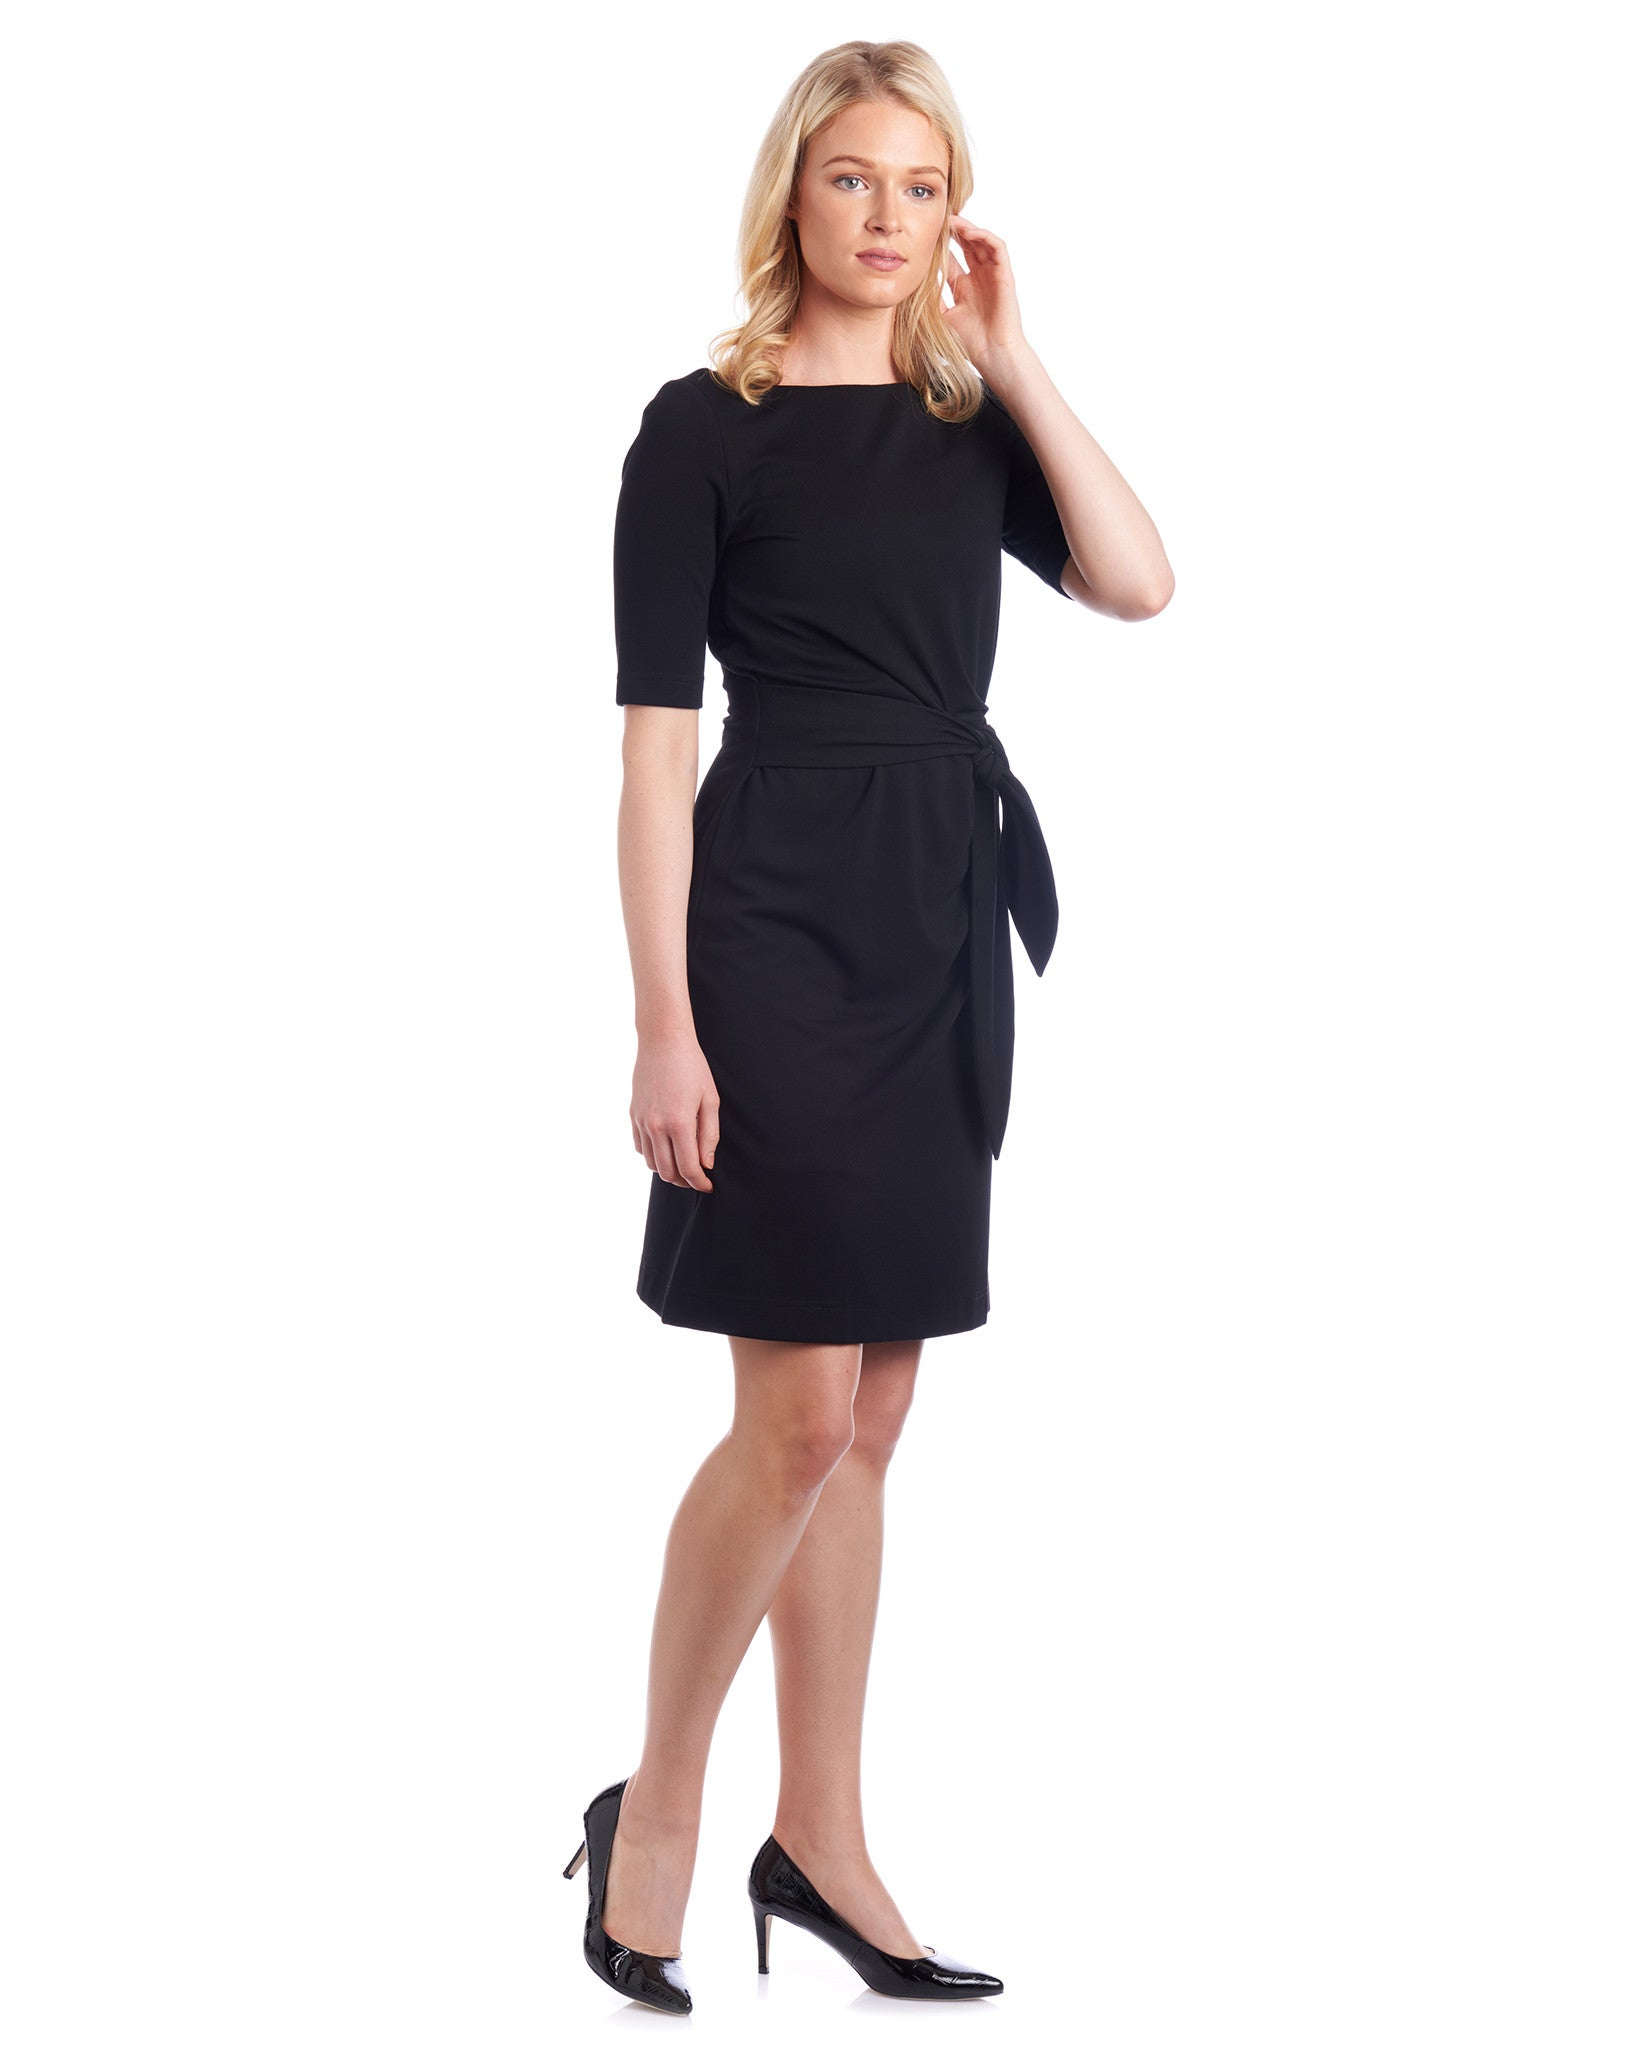 Choose the length of this Tahlo dress to fall above the knee or below the knee